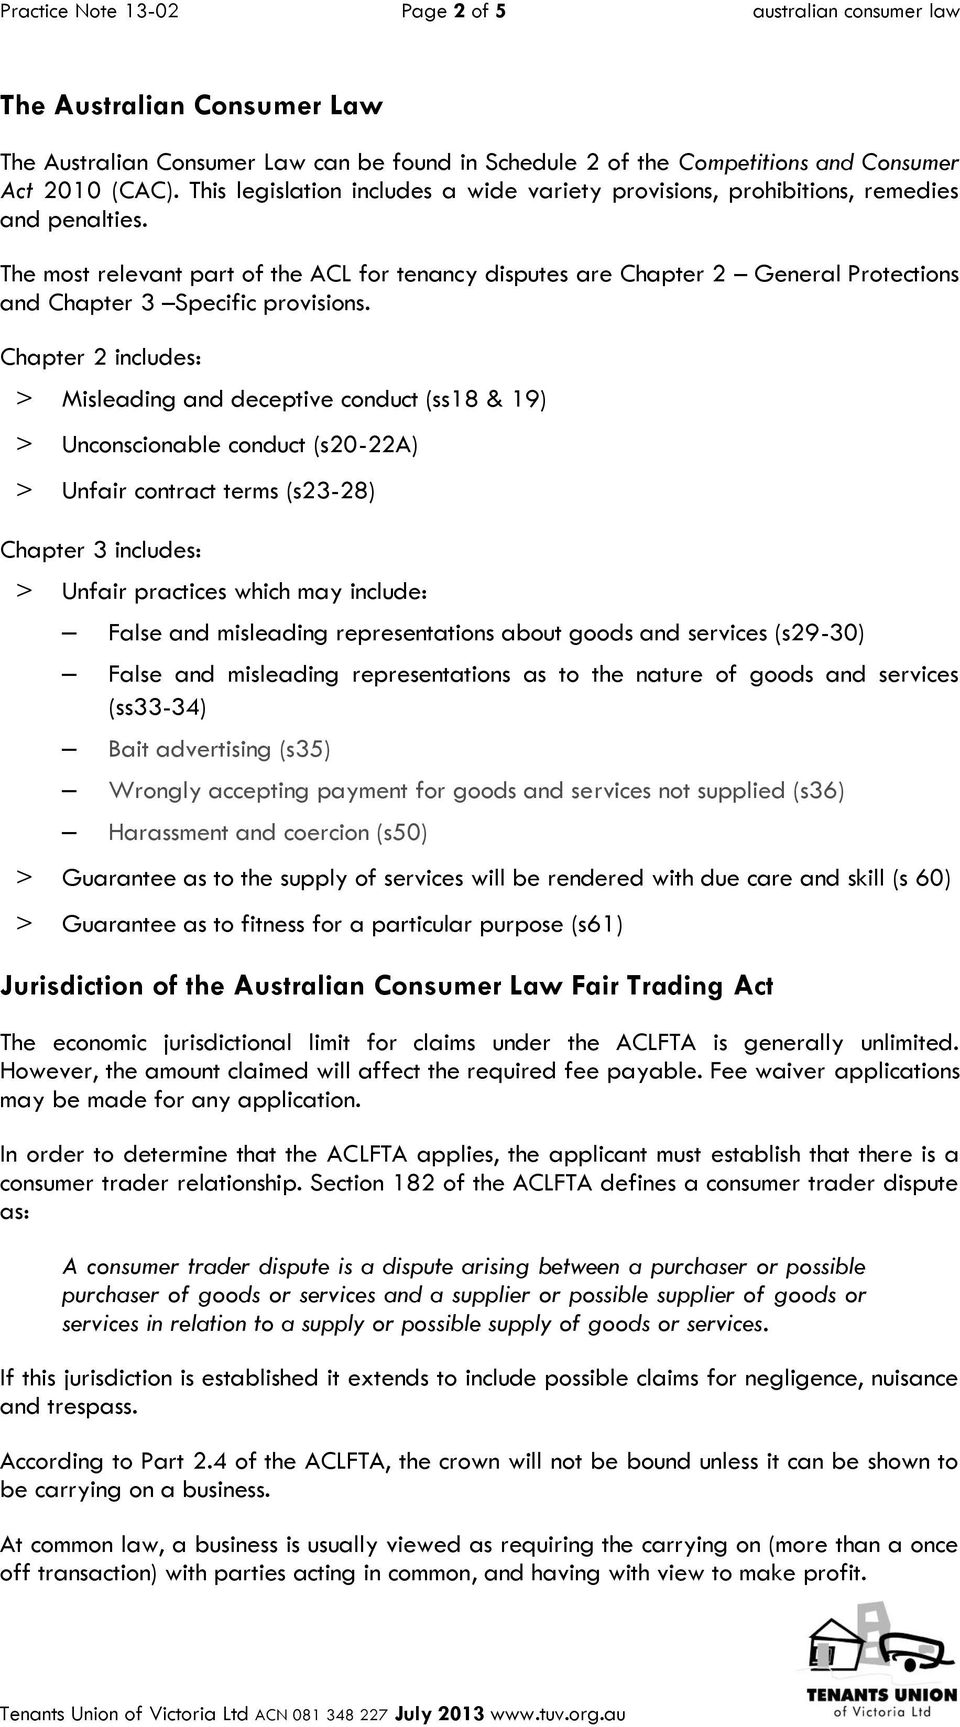 The most relevant part of the ACL for tenancy disputes are Chapter 2 General Protections and Chapter 3 Specific provisions.